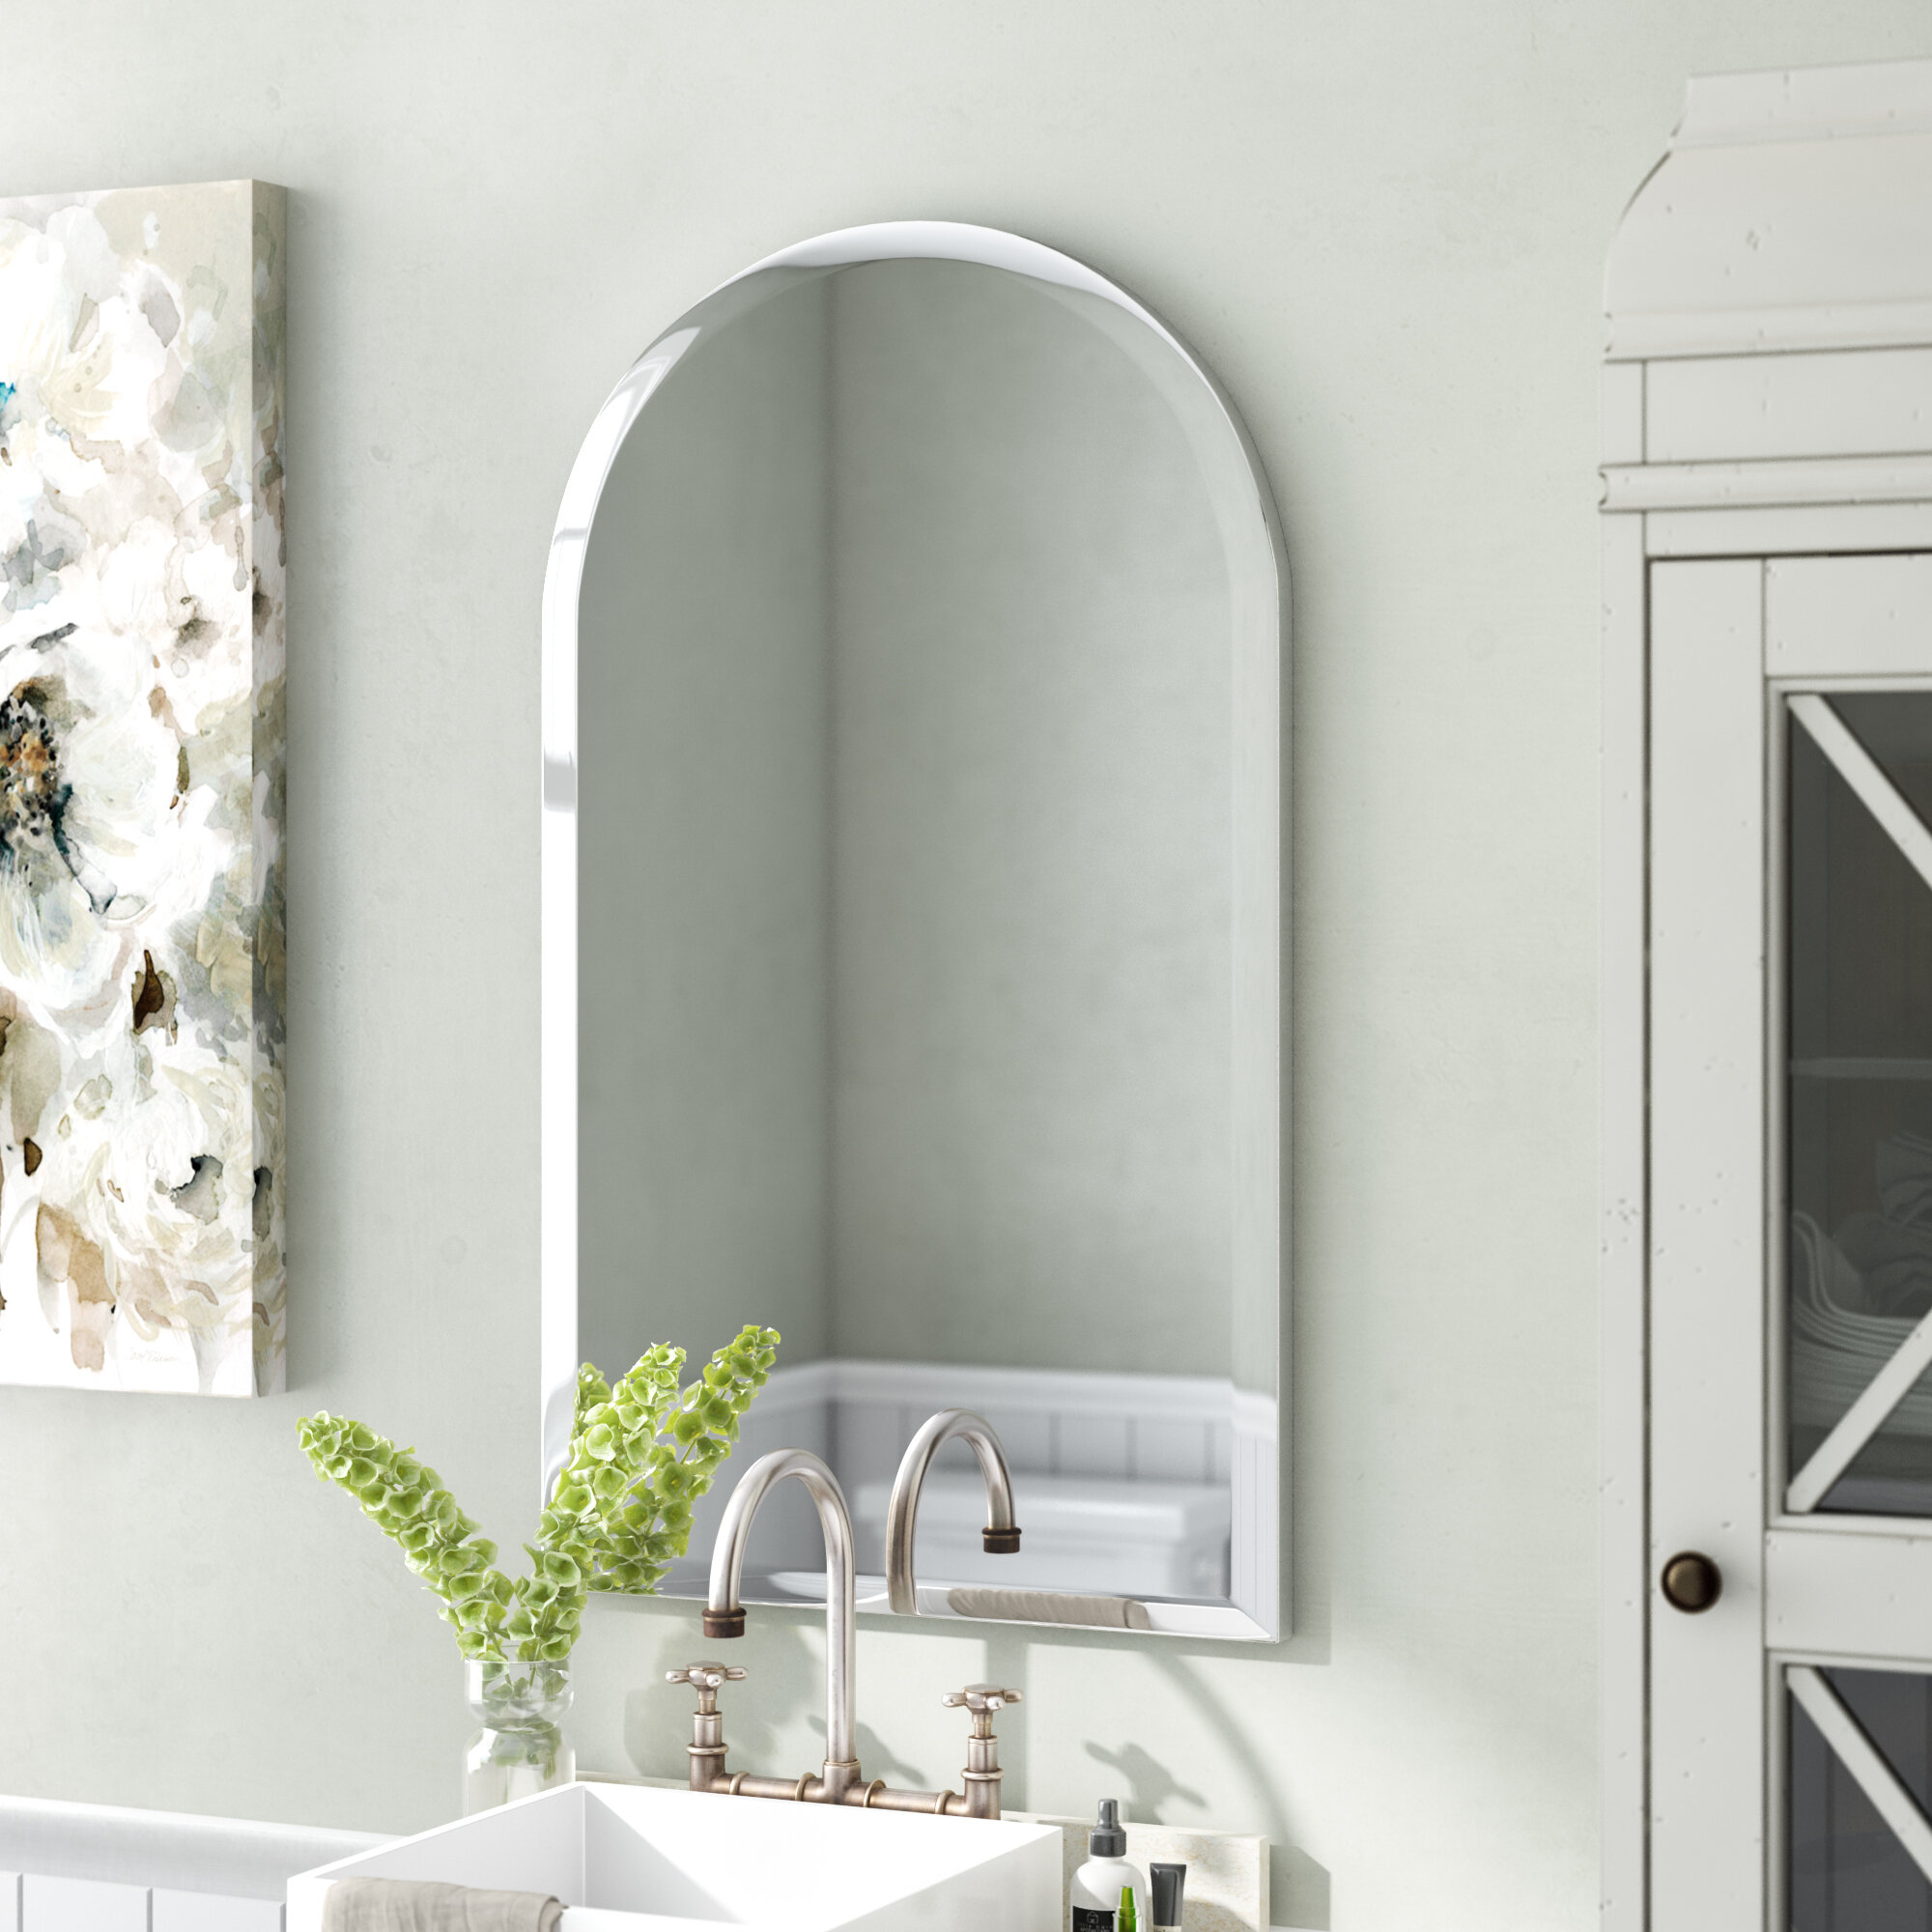 Cathedral Arch Mirror | Wayfair In Fifi Contemporary Arch Wall Mirrors (View 11 of 30)